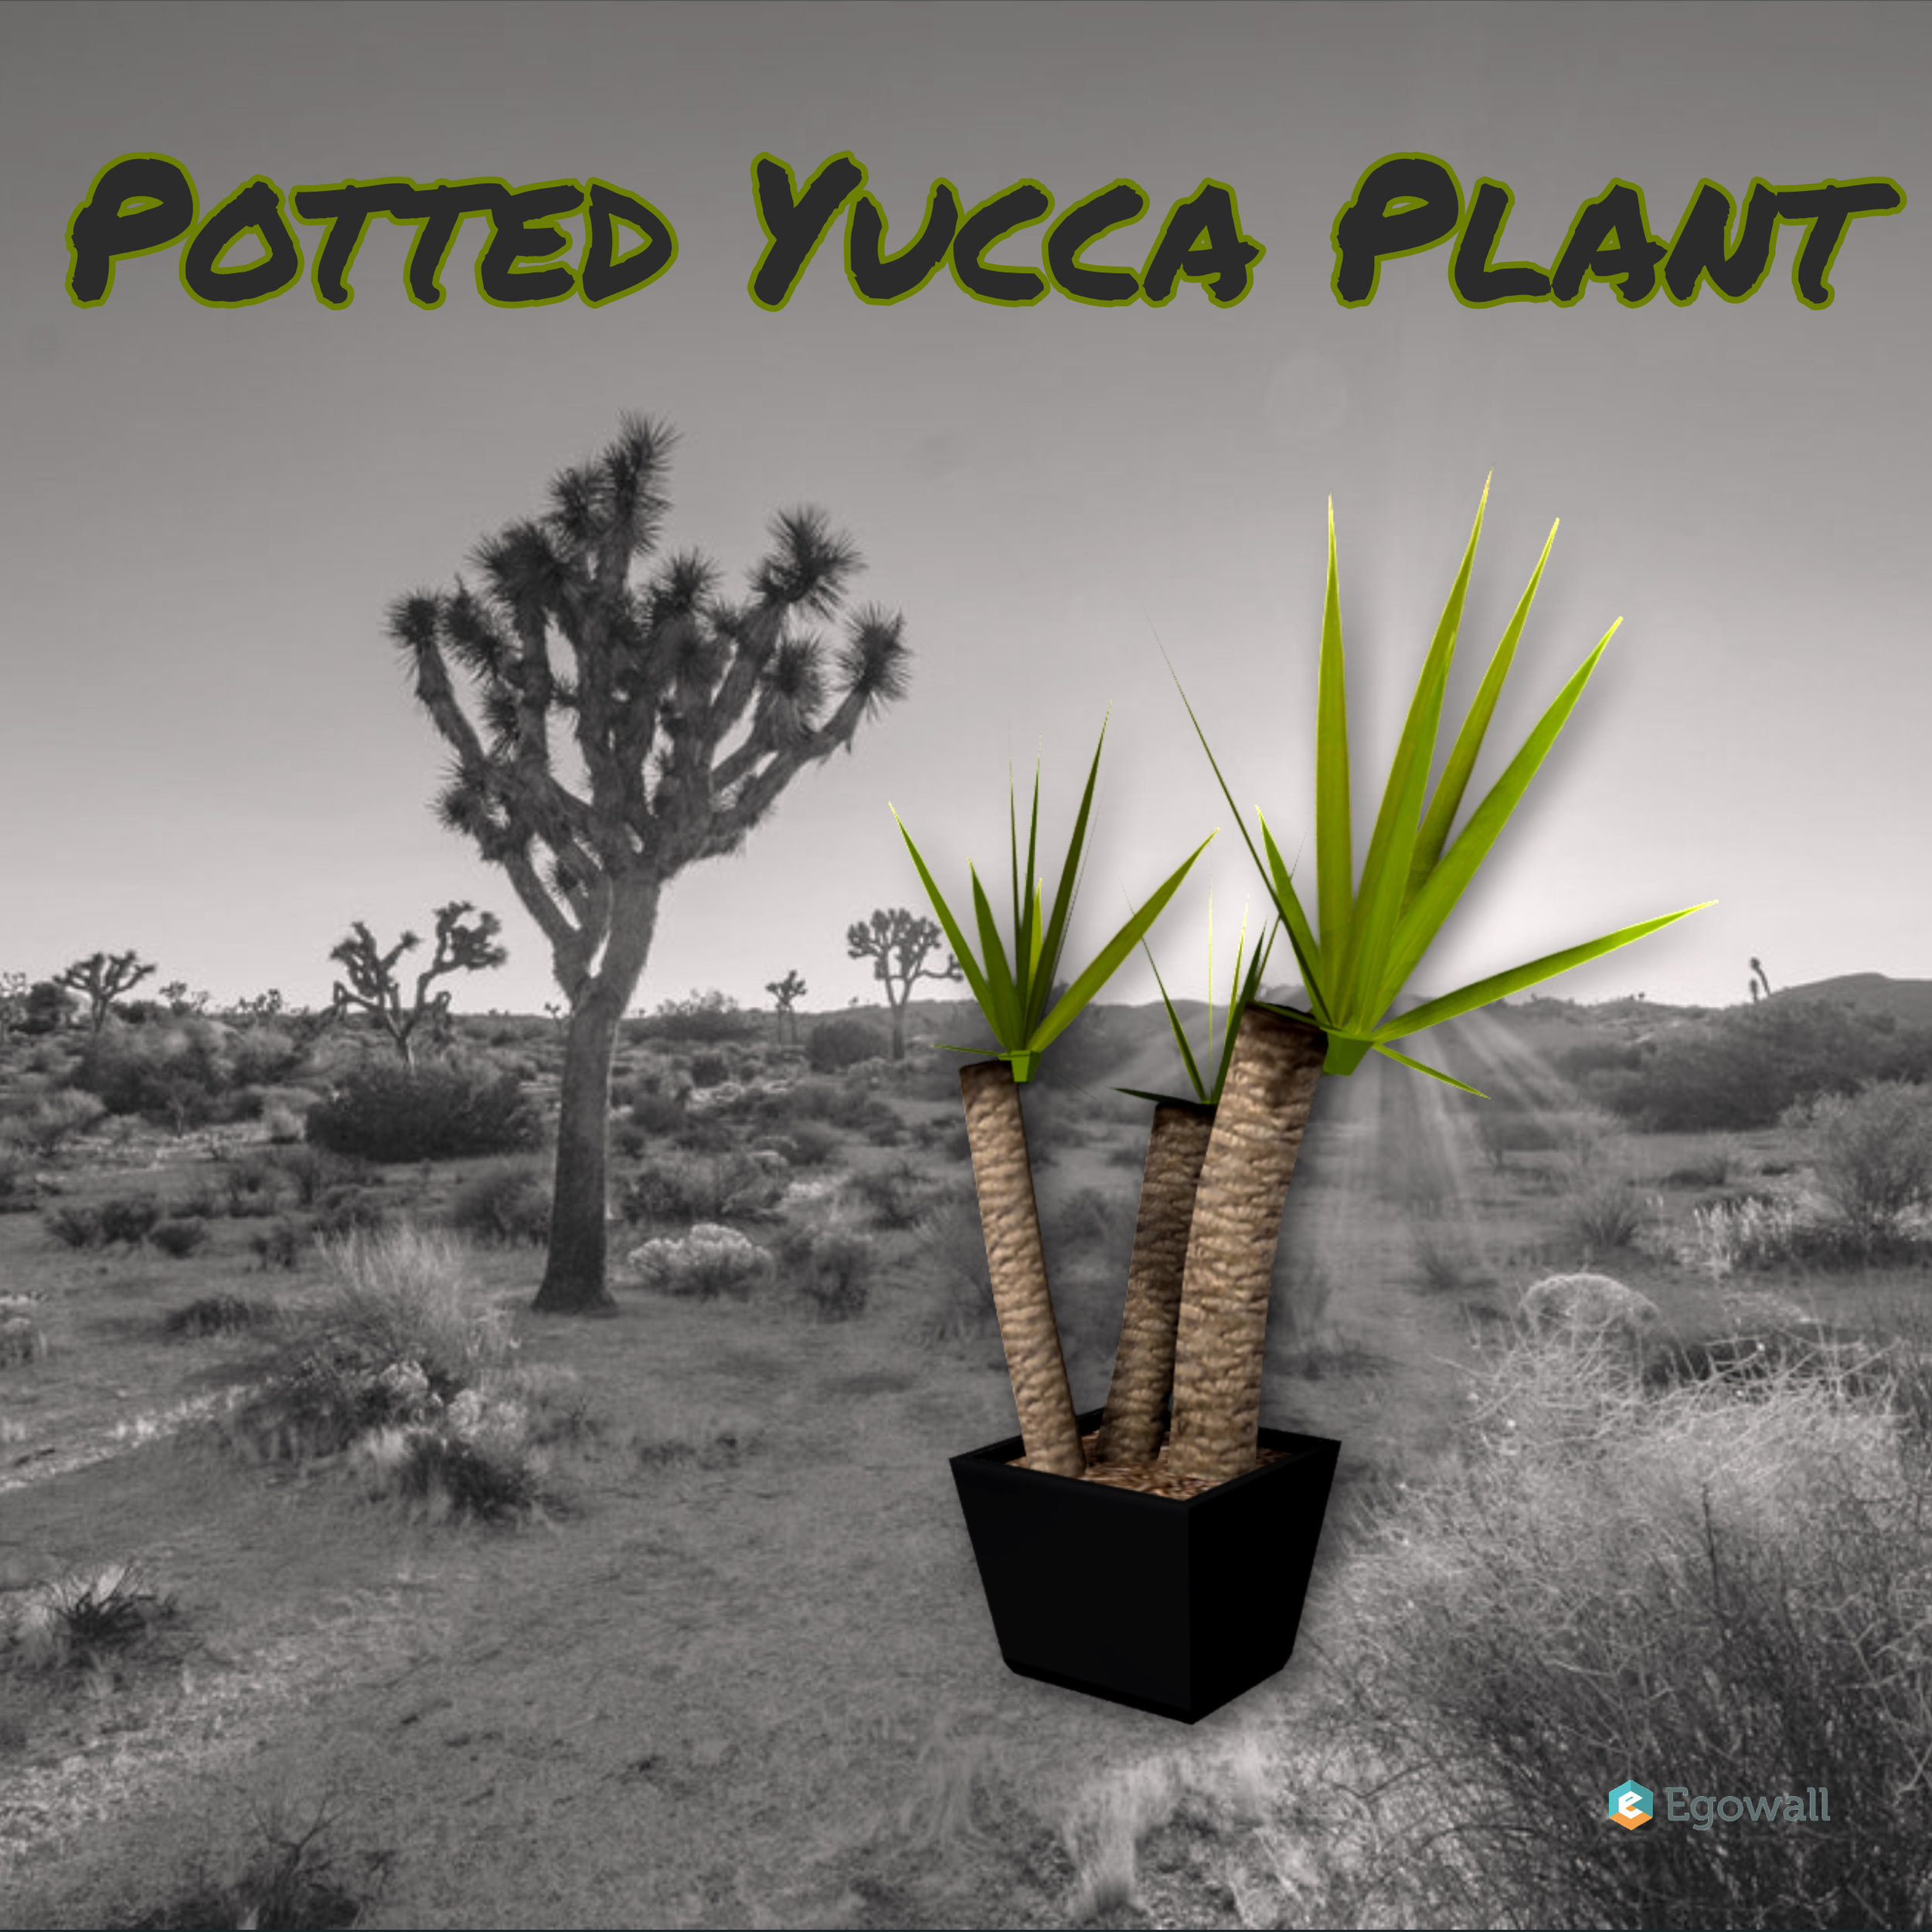 Potted Yucca Plant.Instagram.jpg